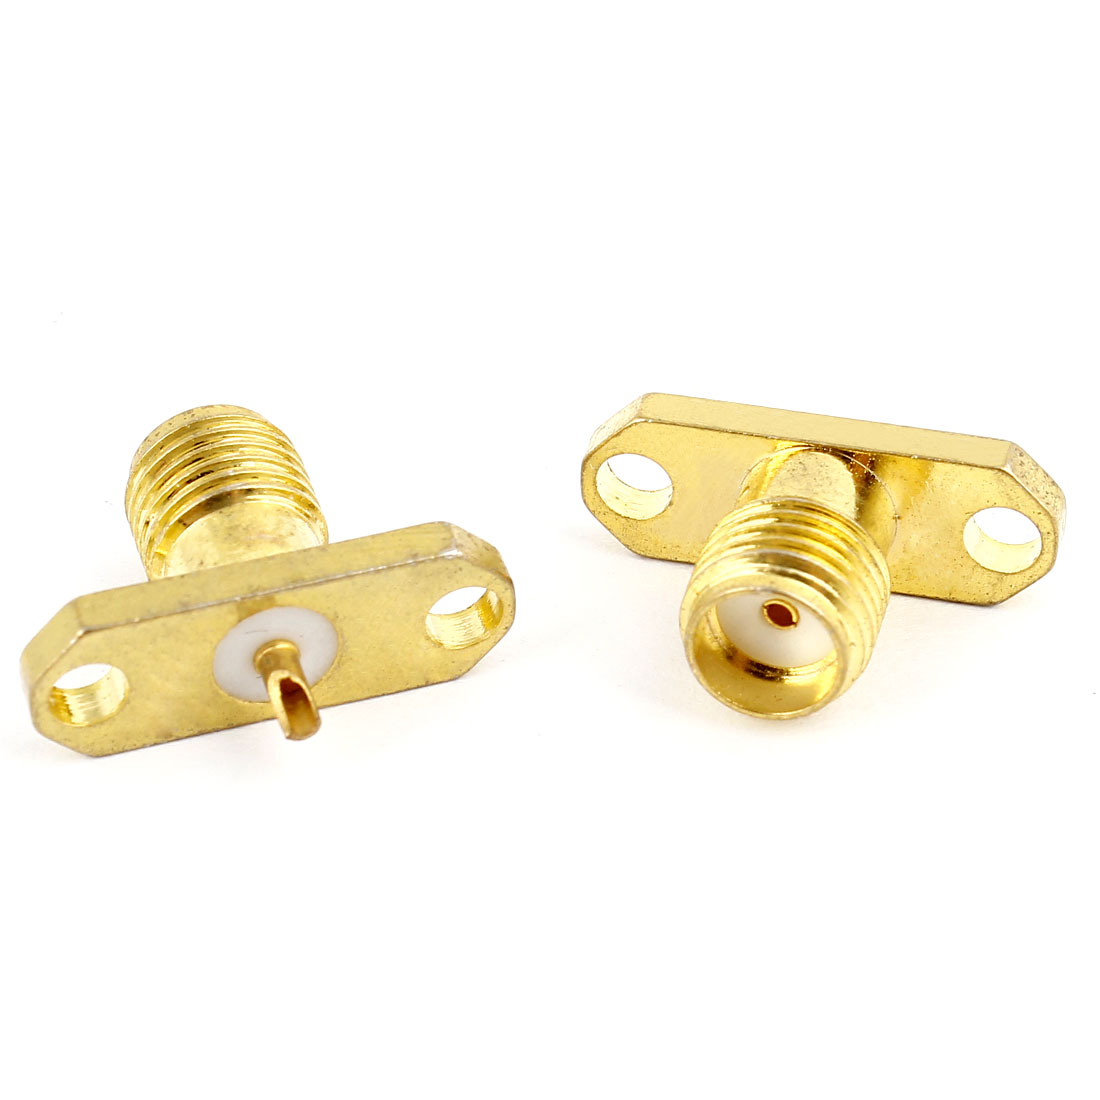 2pcs SMA Female 2-hole Flange Panel Mount Connector Adapter